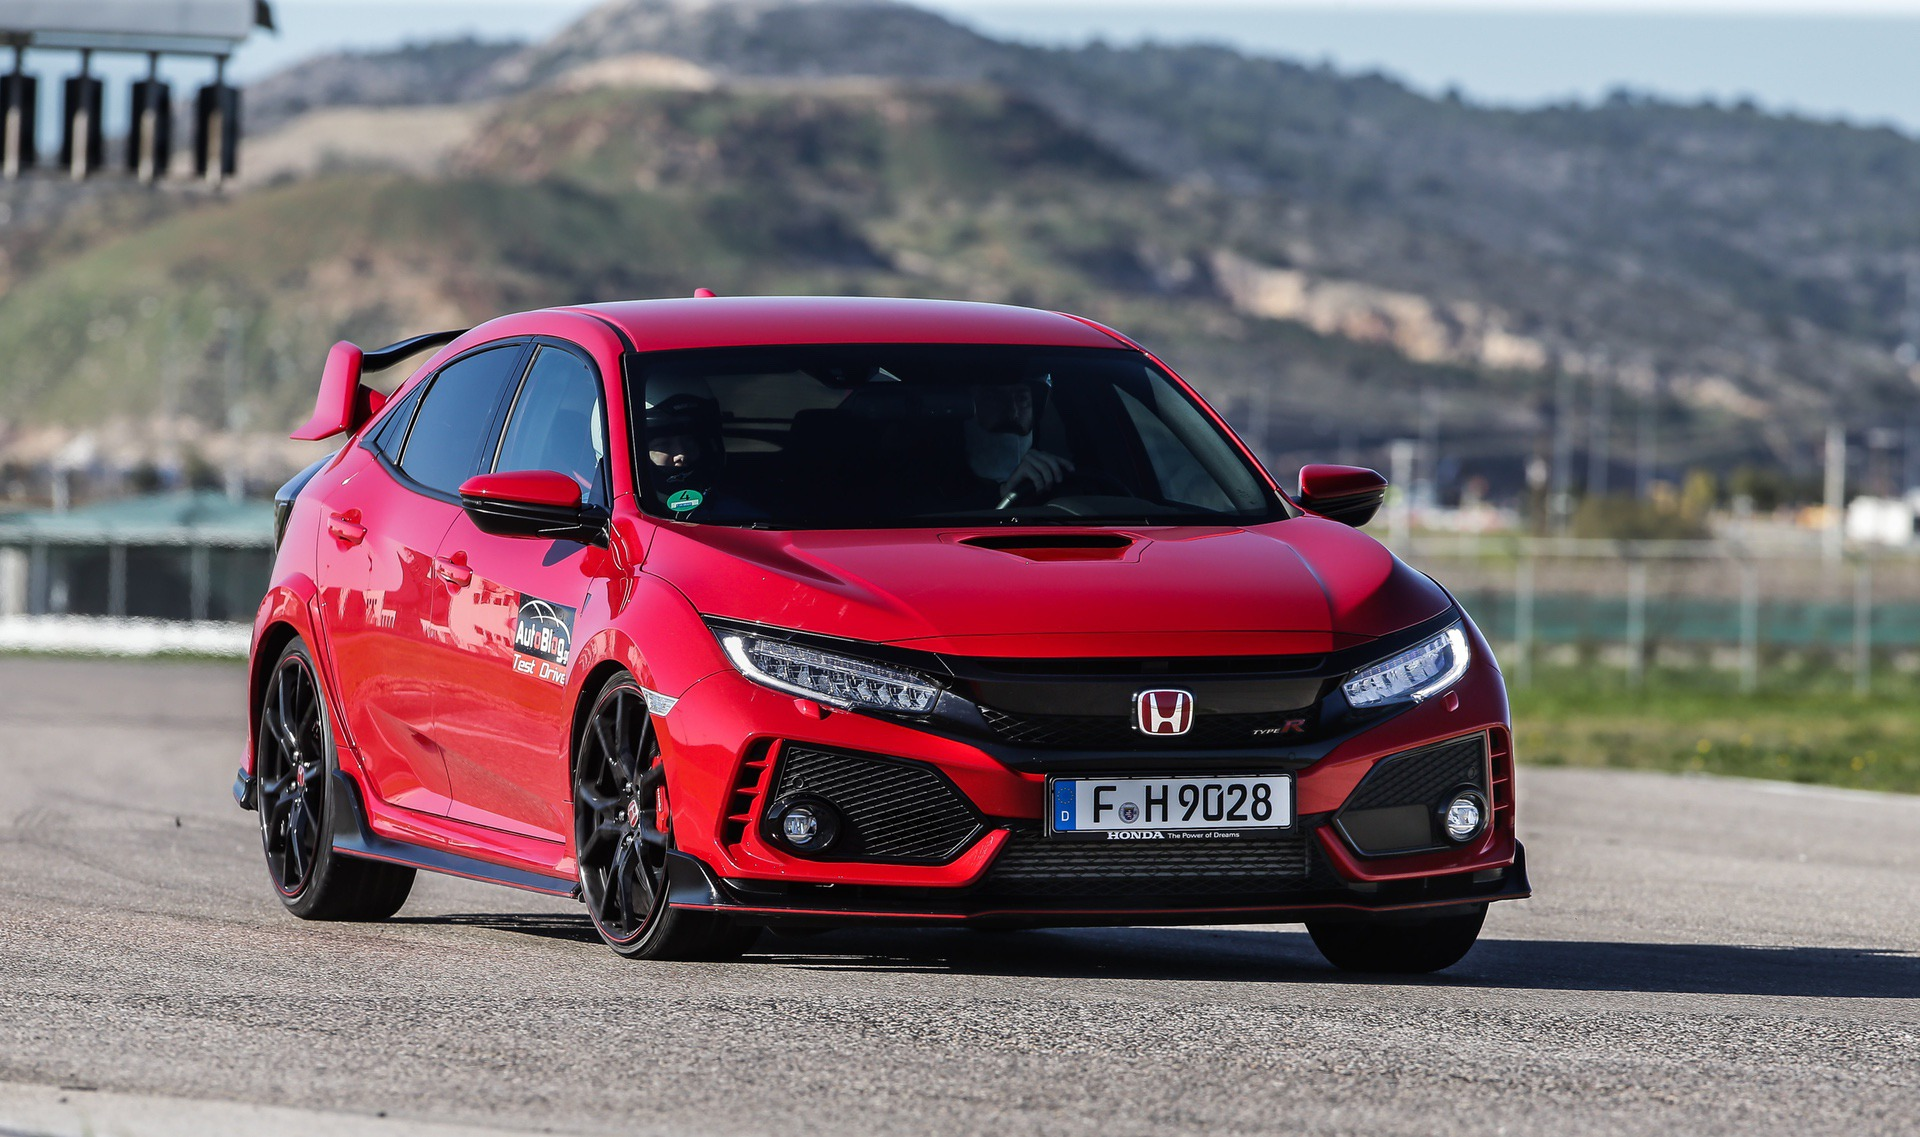 Track_Test_Honda_Civic_Type_R_012